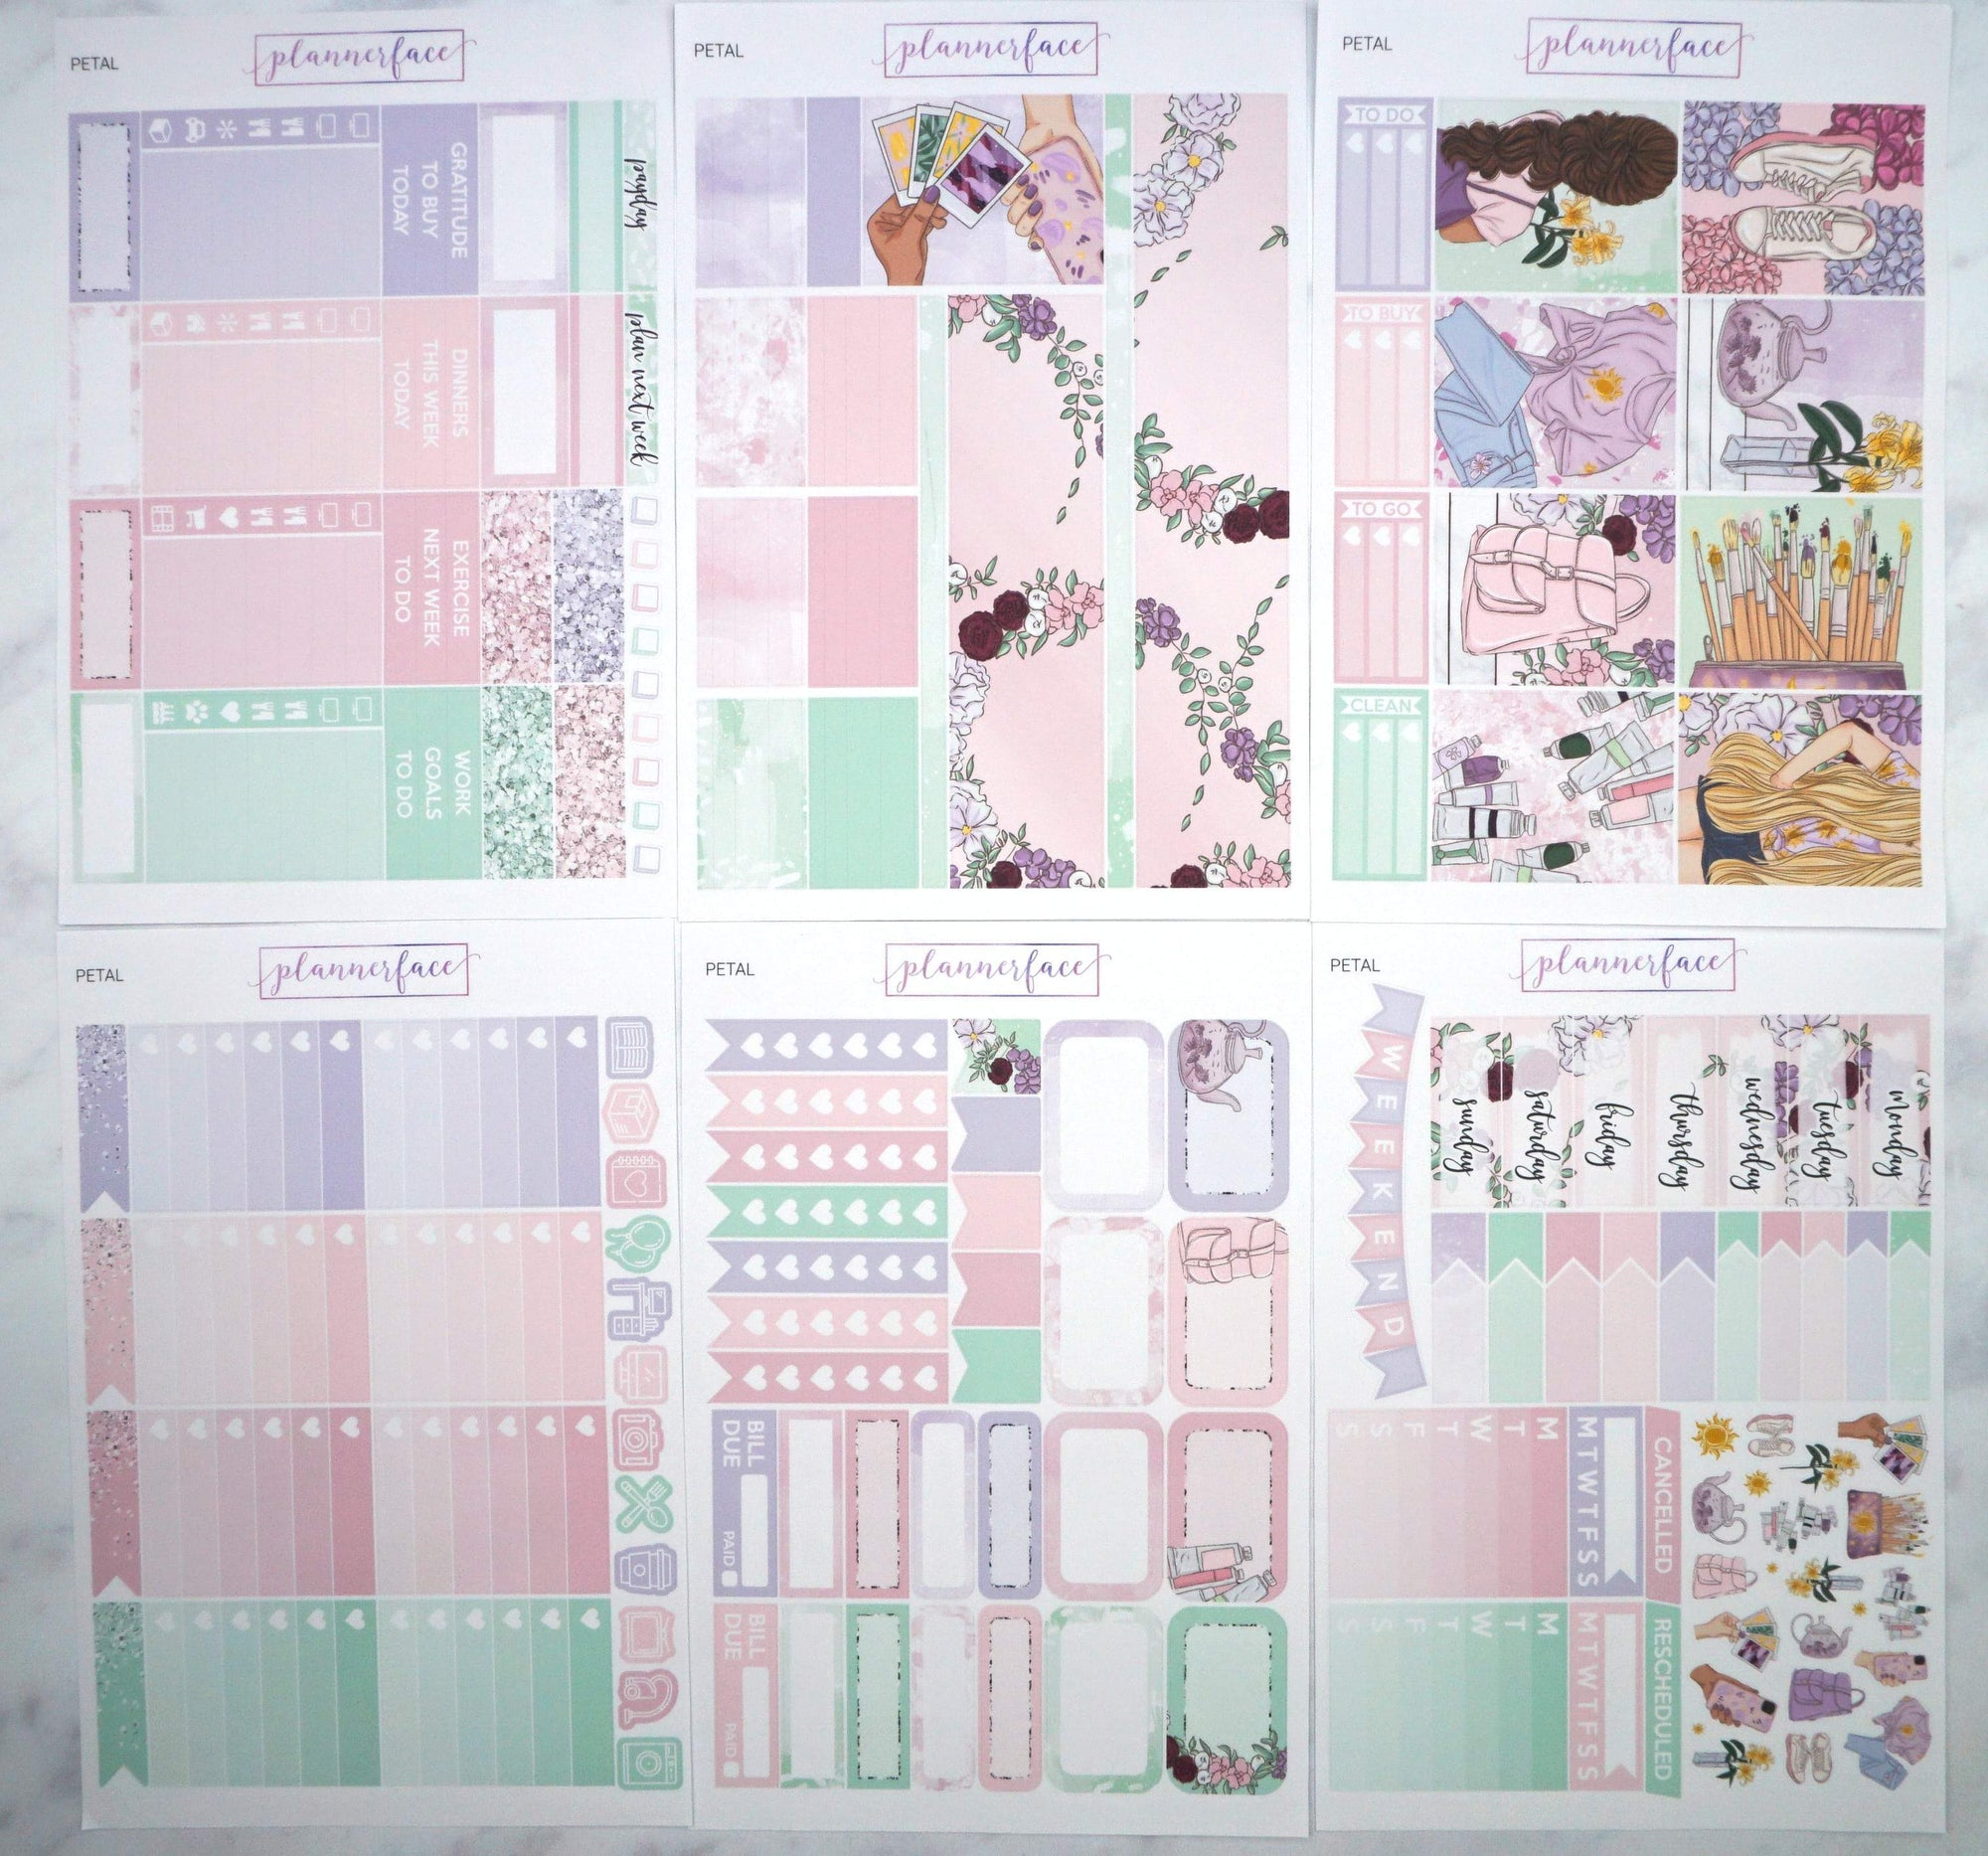 Plannerface Petal Weekly Kit Planner Stickers